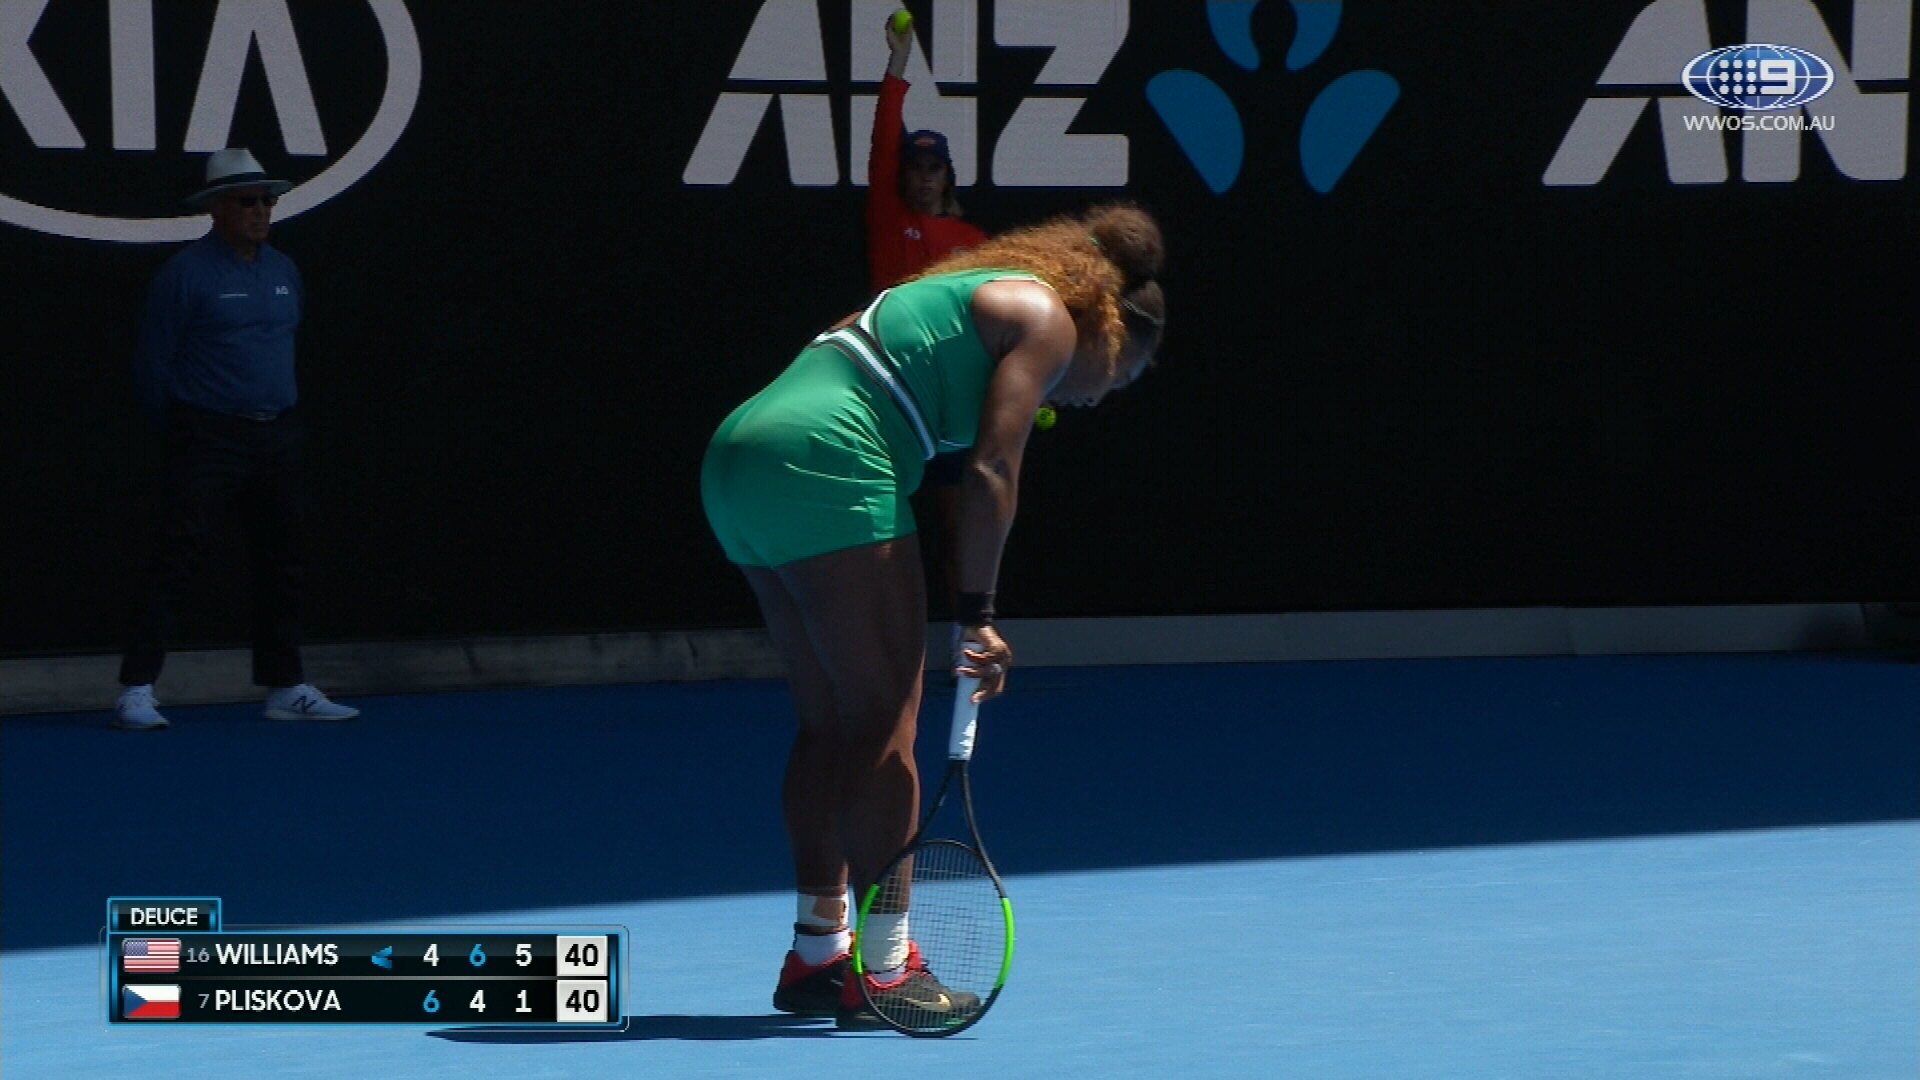 Serena's ankle injury scare